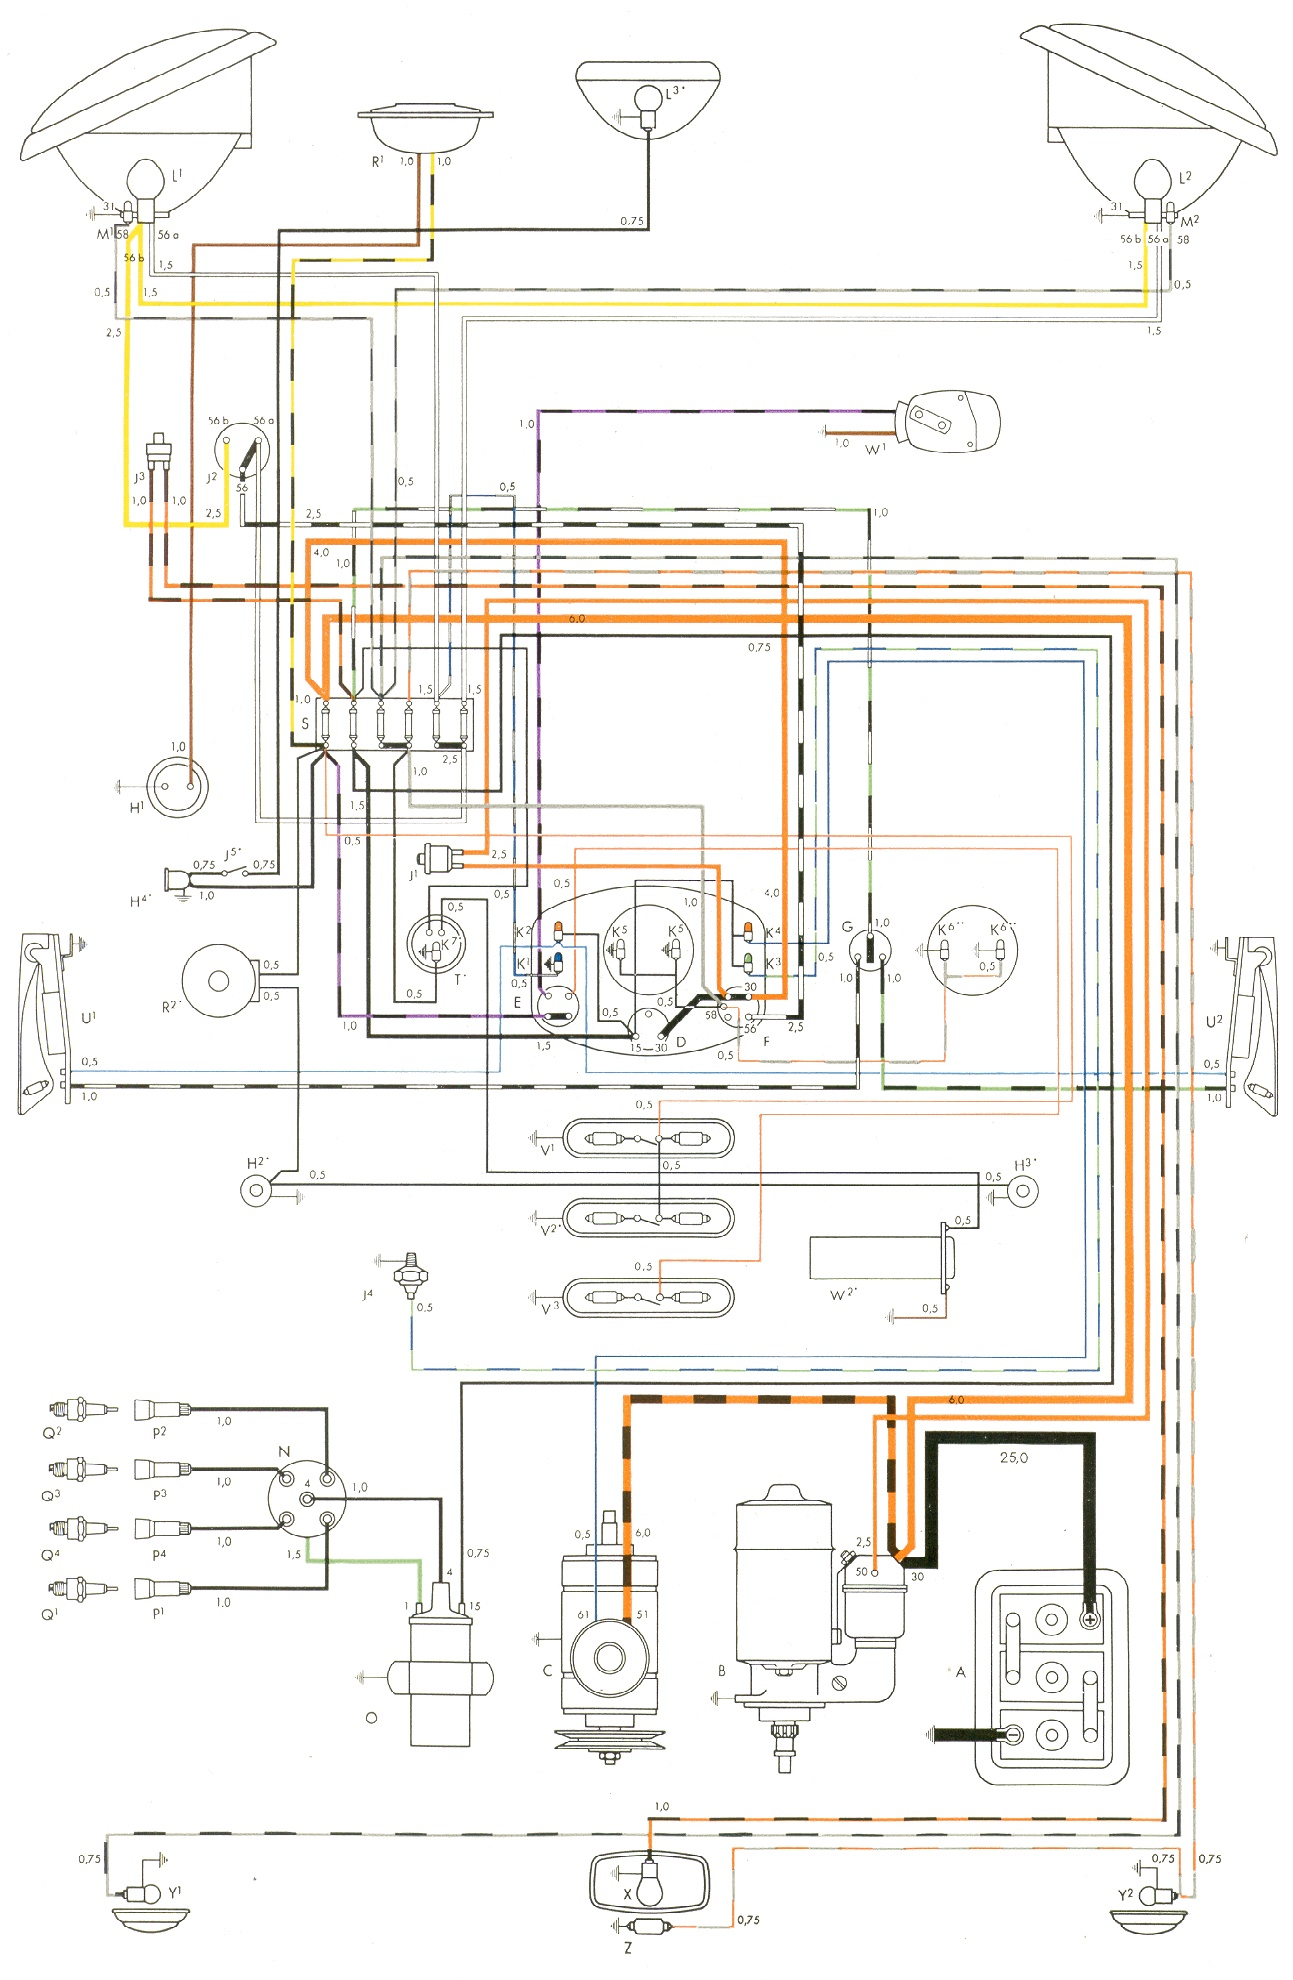 72 Bug Wiring Diagram | Wiring Diagram  Best Images Of Vw Beetle Wiring Diagram on